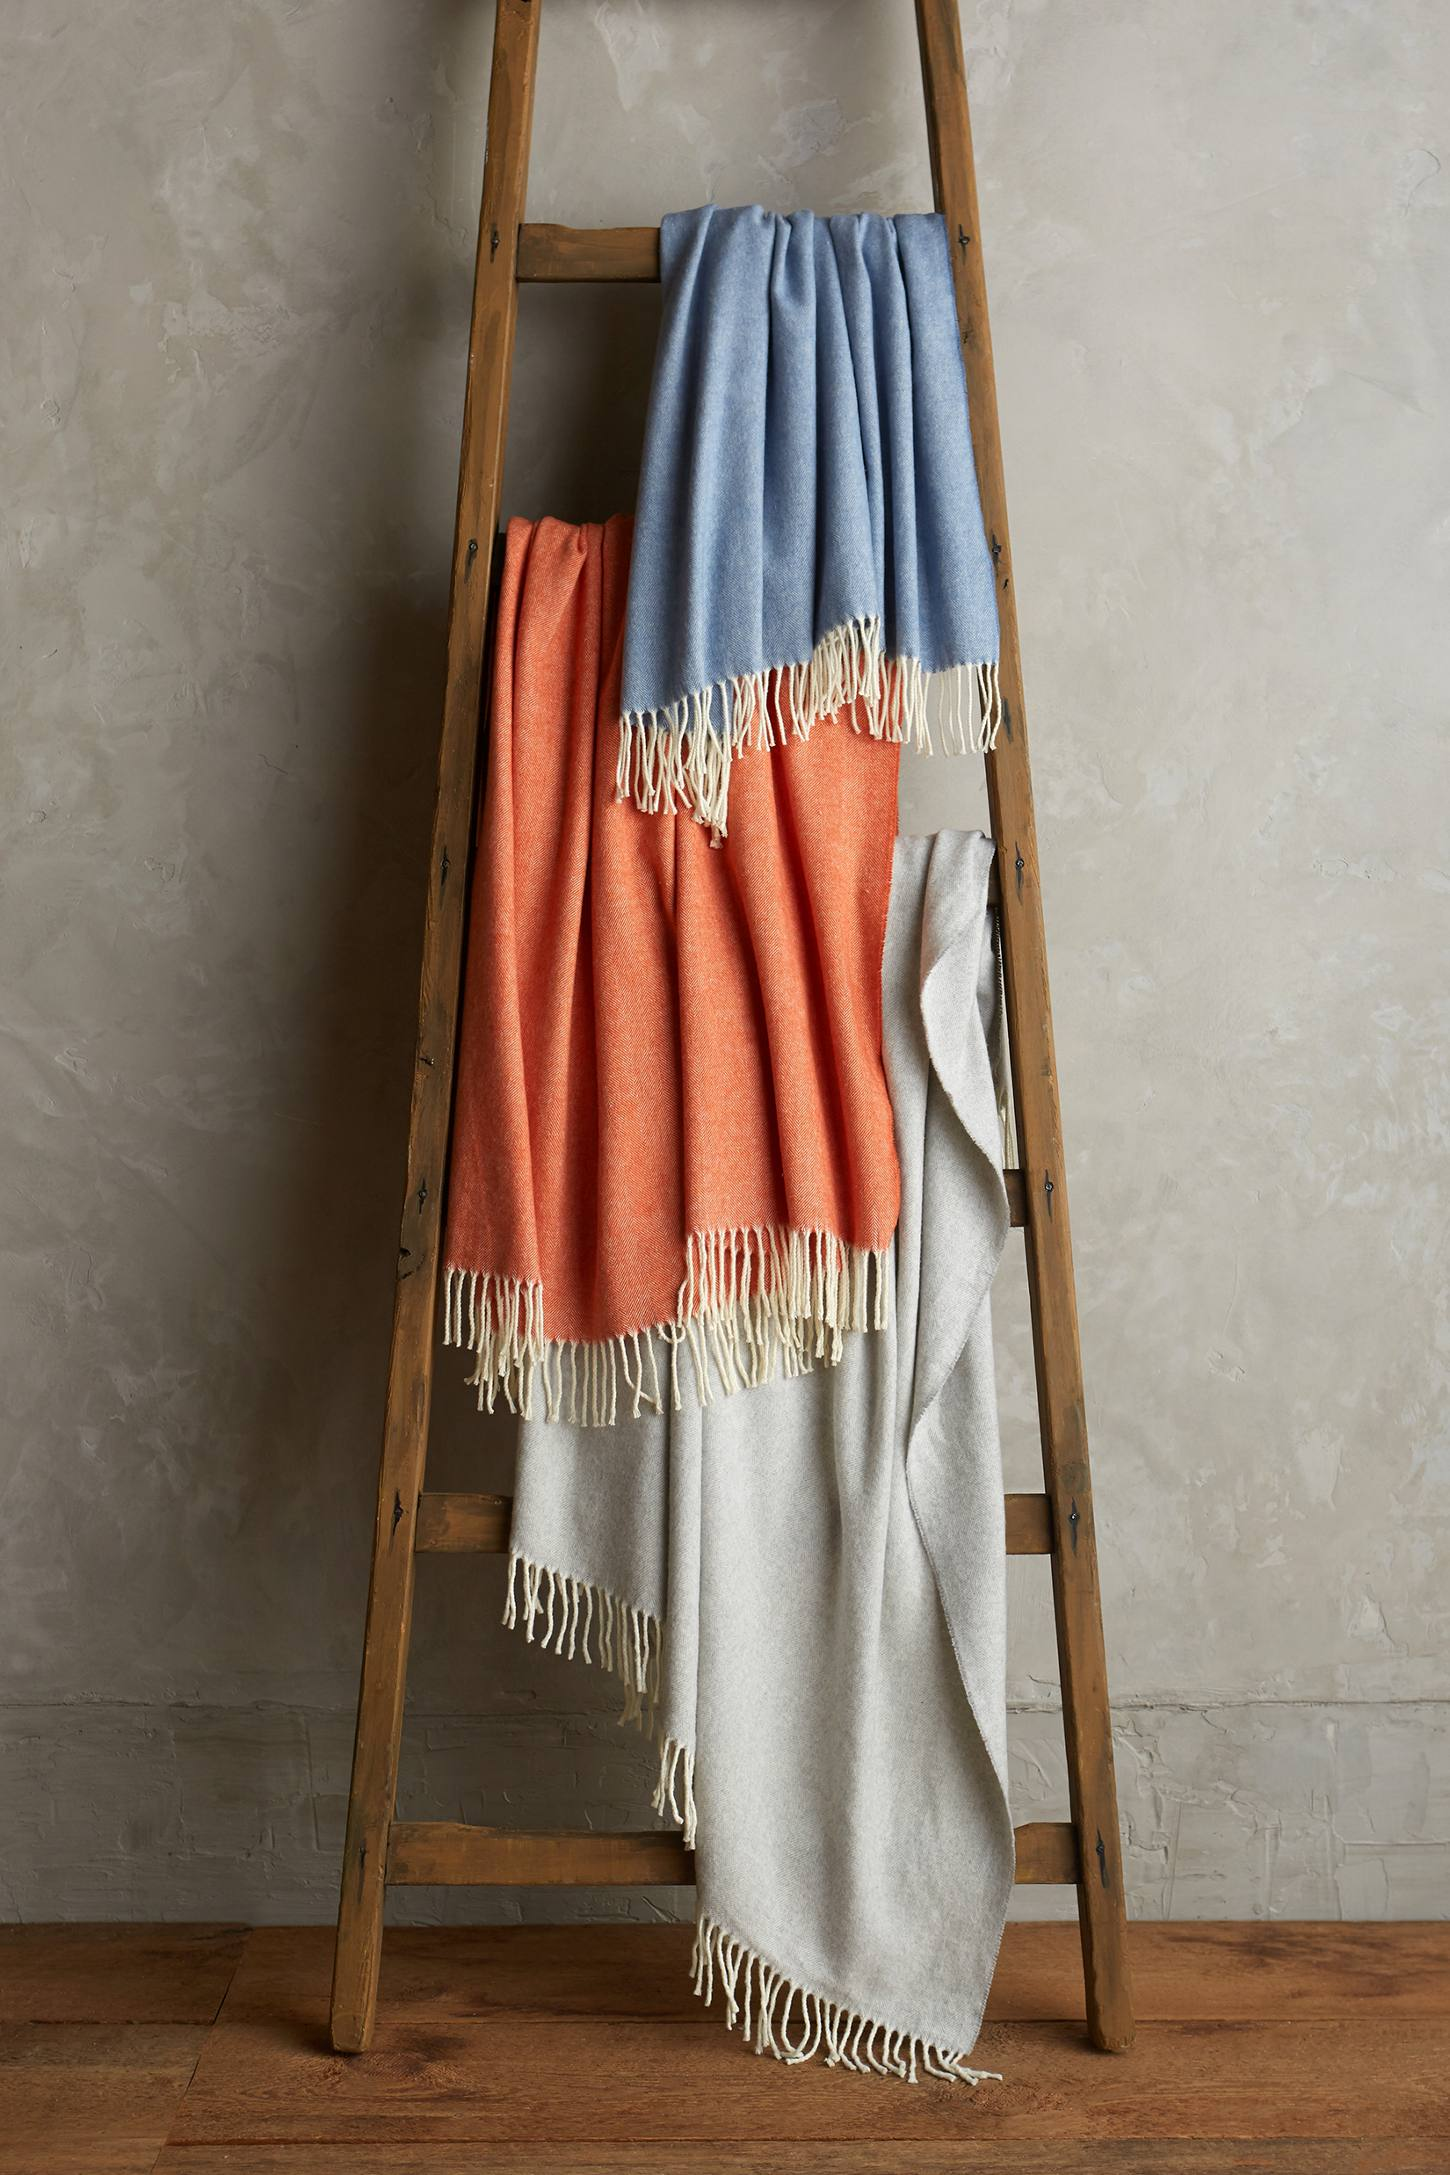 Slide View: 3: Veranda Italian Throw